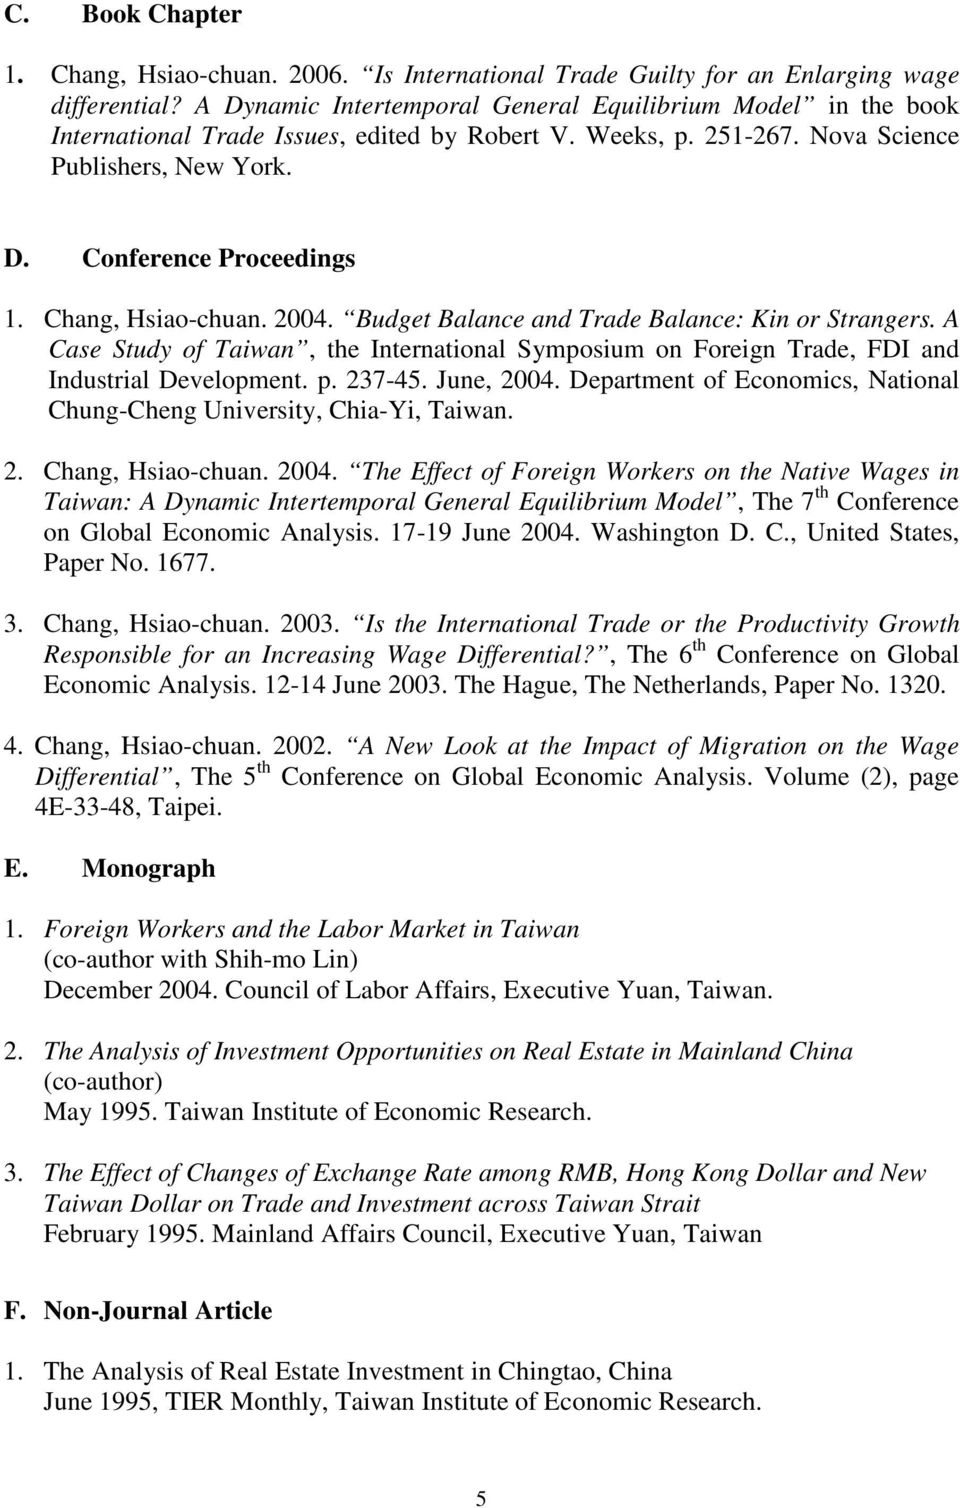 Chang, Hsiao-chuan. 2004. Budget Balance and Trade Balance: Kin or Strangers. A Case Study of Taiwan, the International Symposium on Foreign Trade, FDI and Industrial Development. p. 237-45.